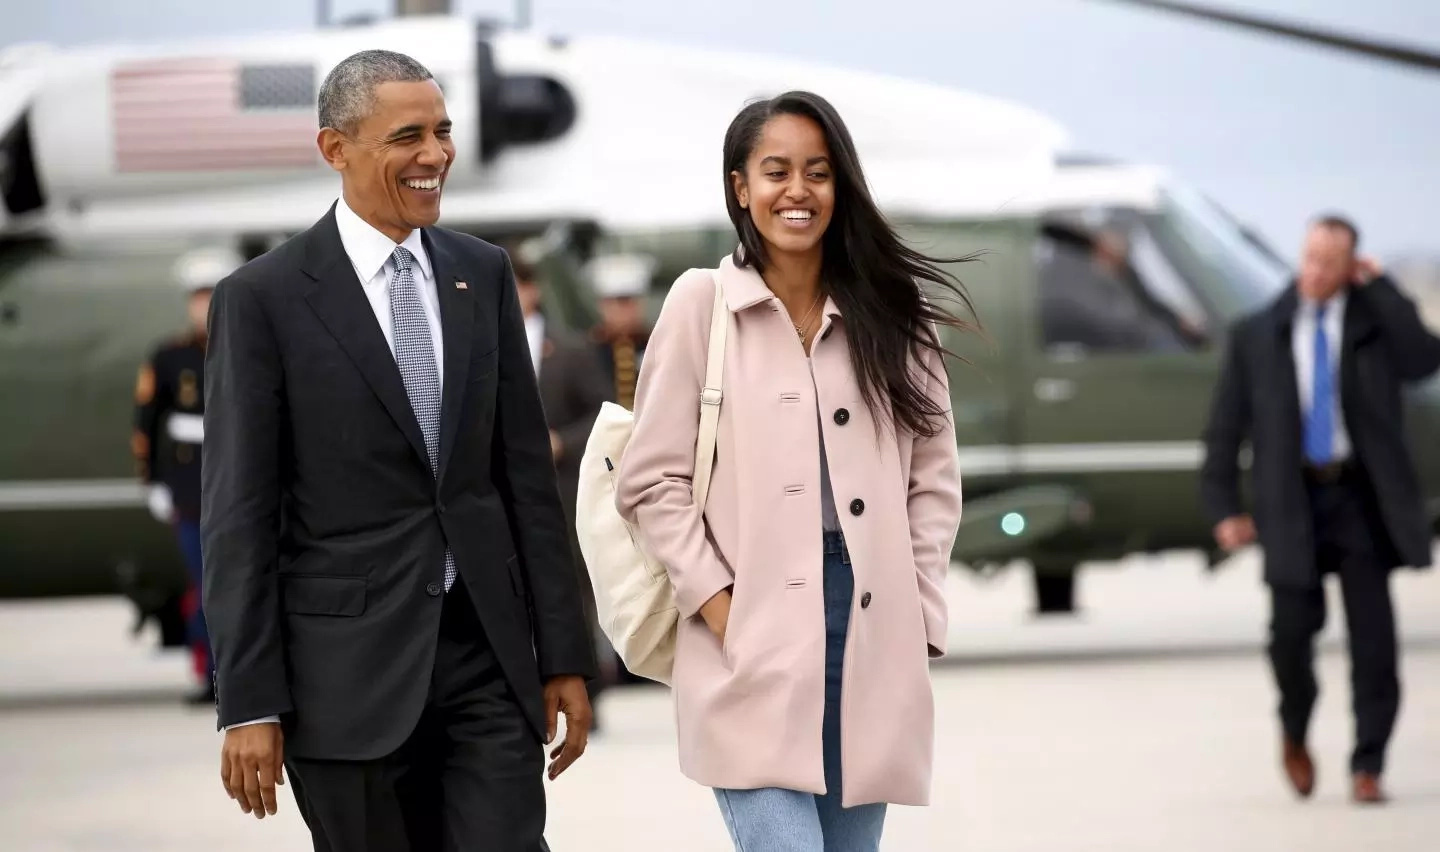 Malia with her dad Barack Obama. Photo: Reuters/Kevin Lamarque